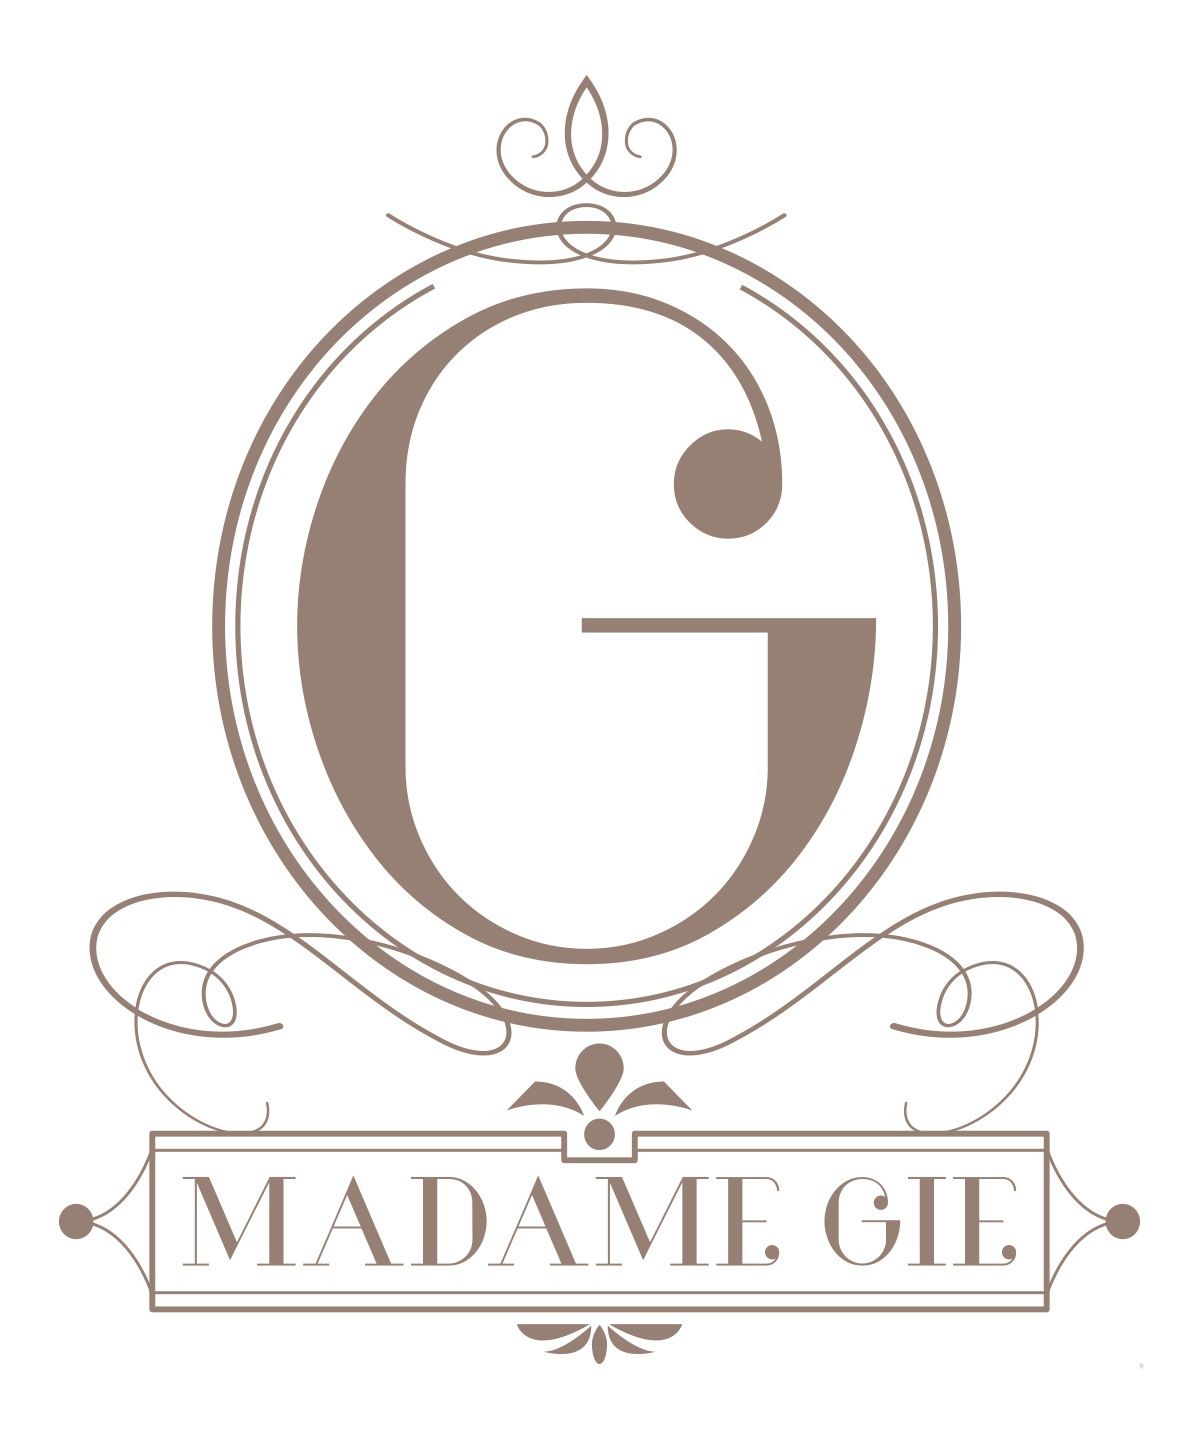 MADAME GIE OFFICIAL